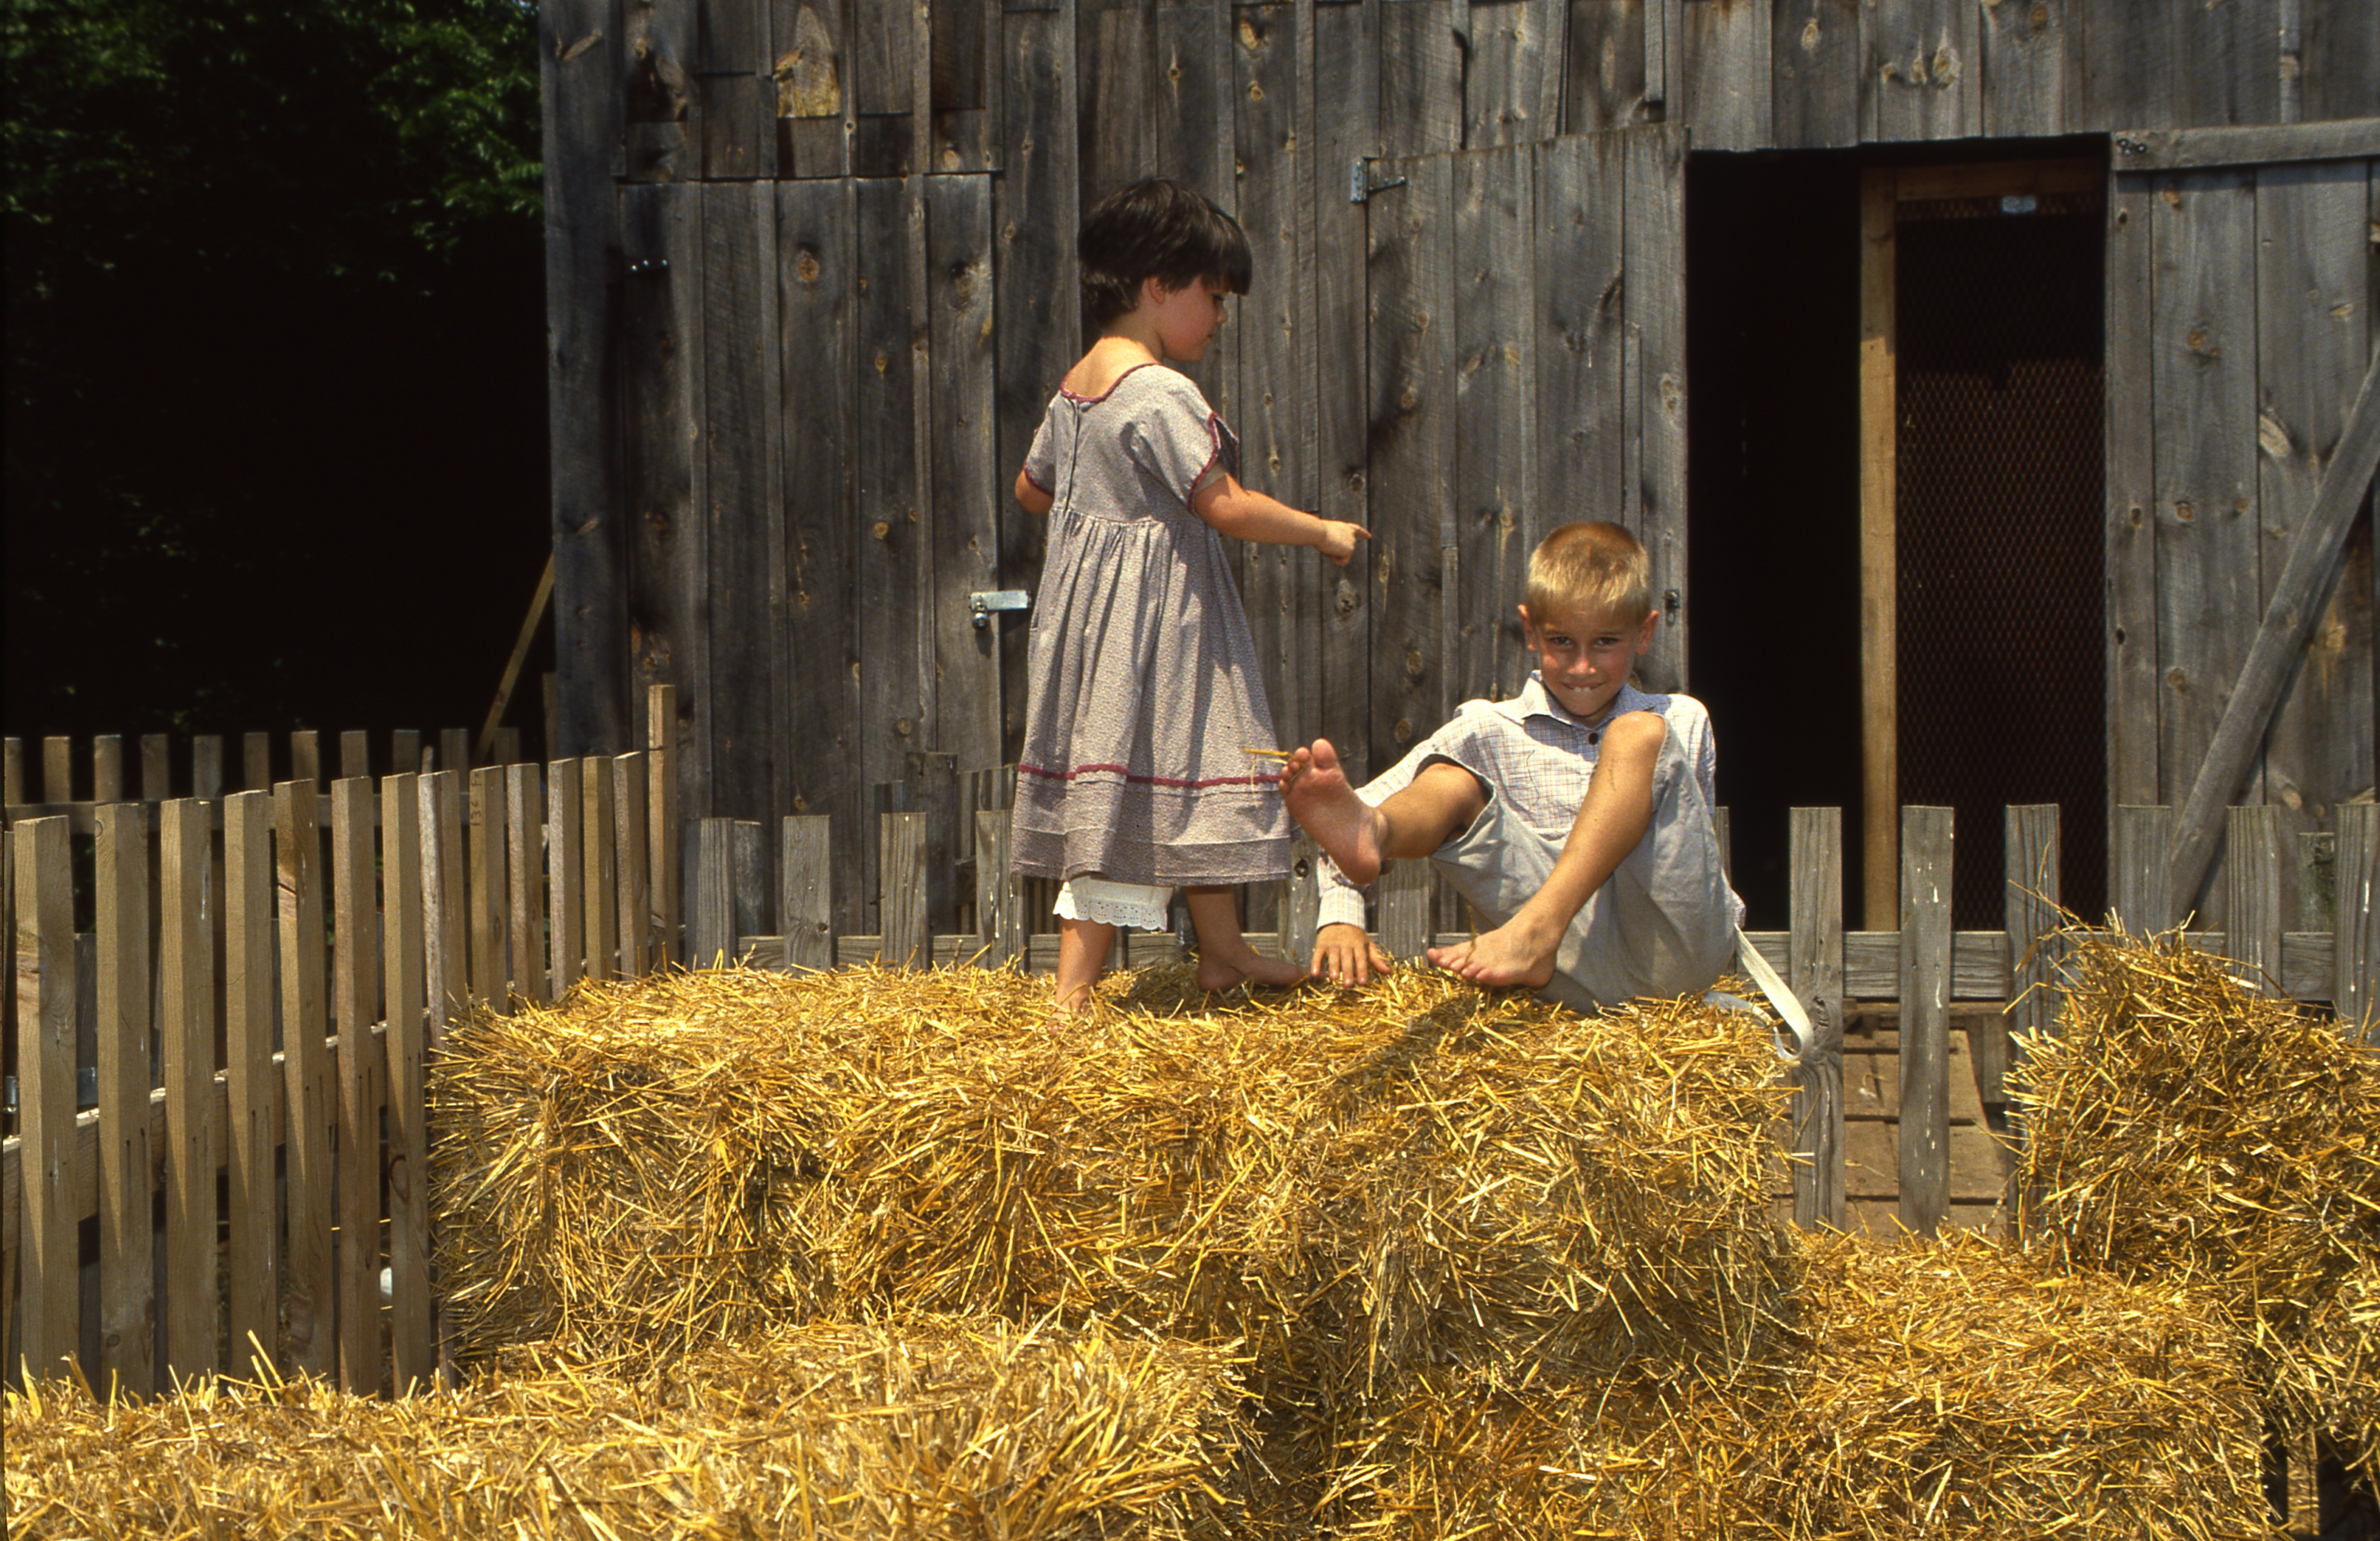 Children Play On Hay Bales At Cobblestone Farm, July 28, 1990 image